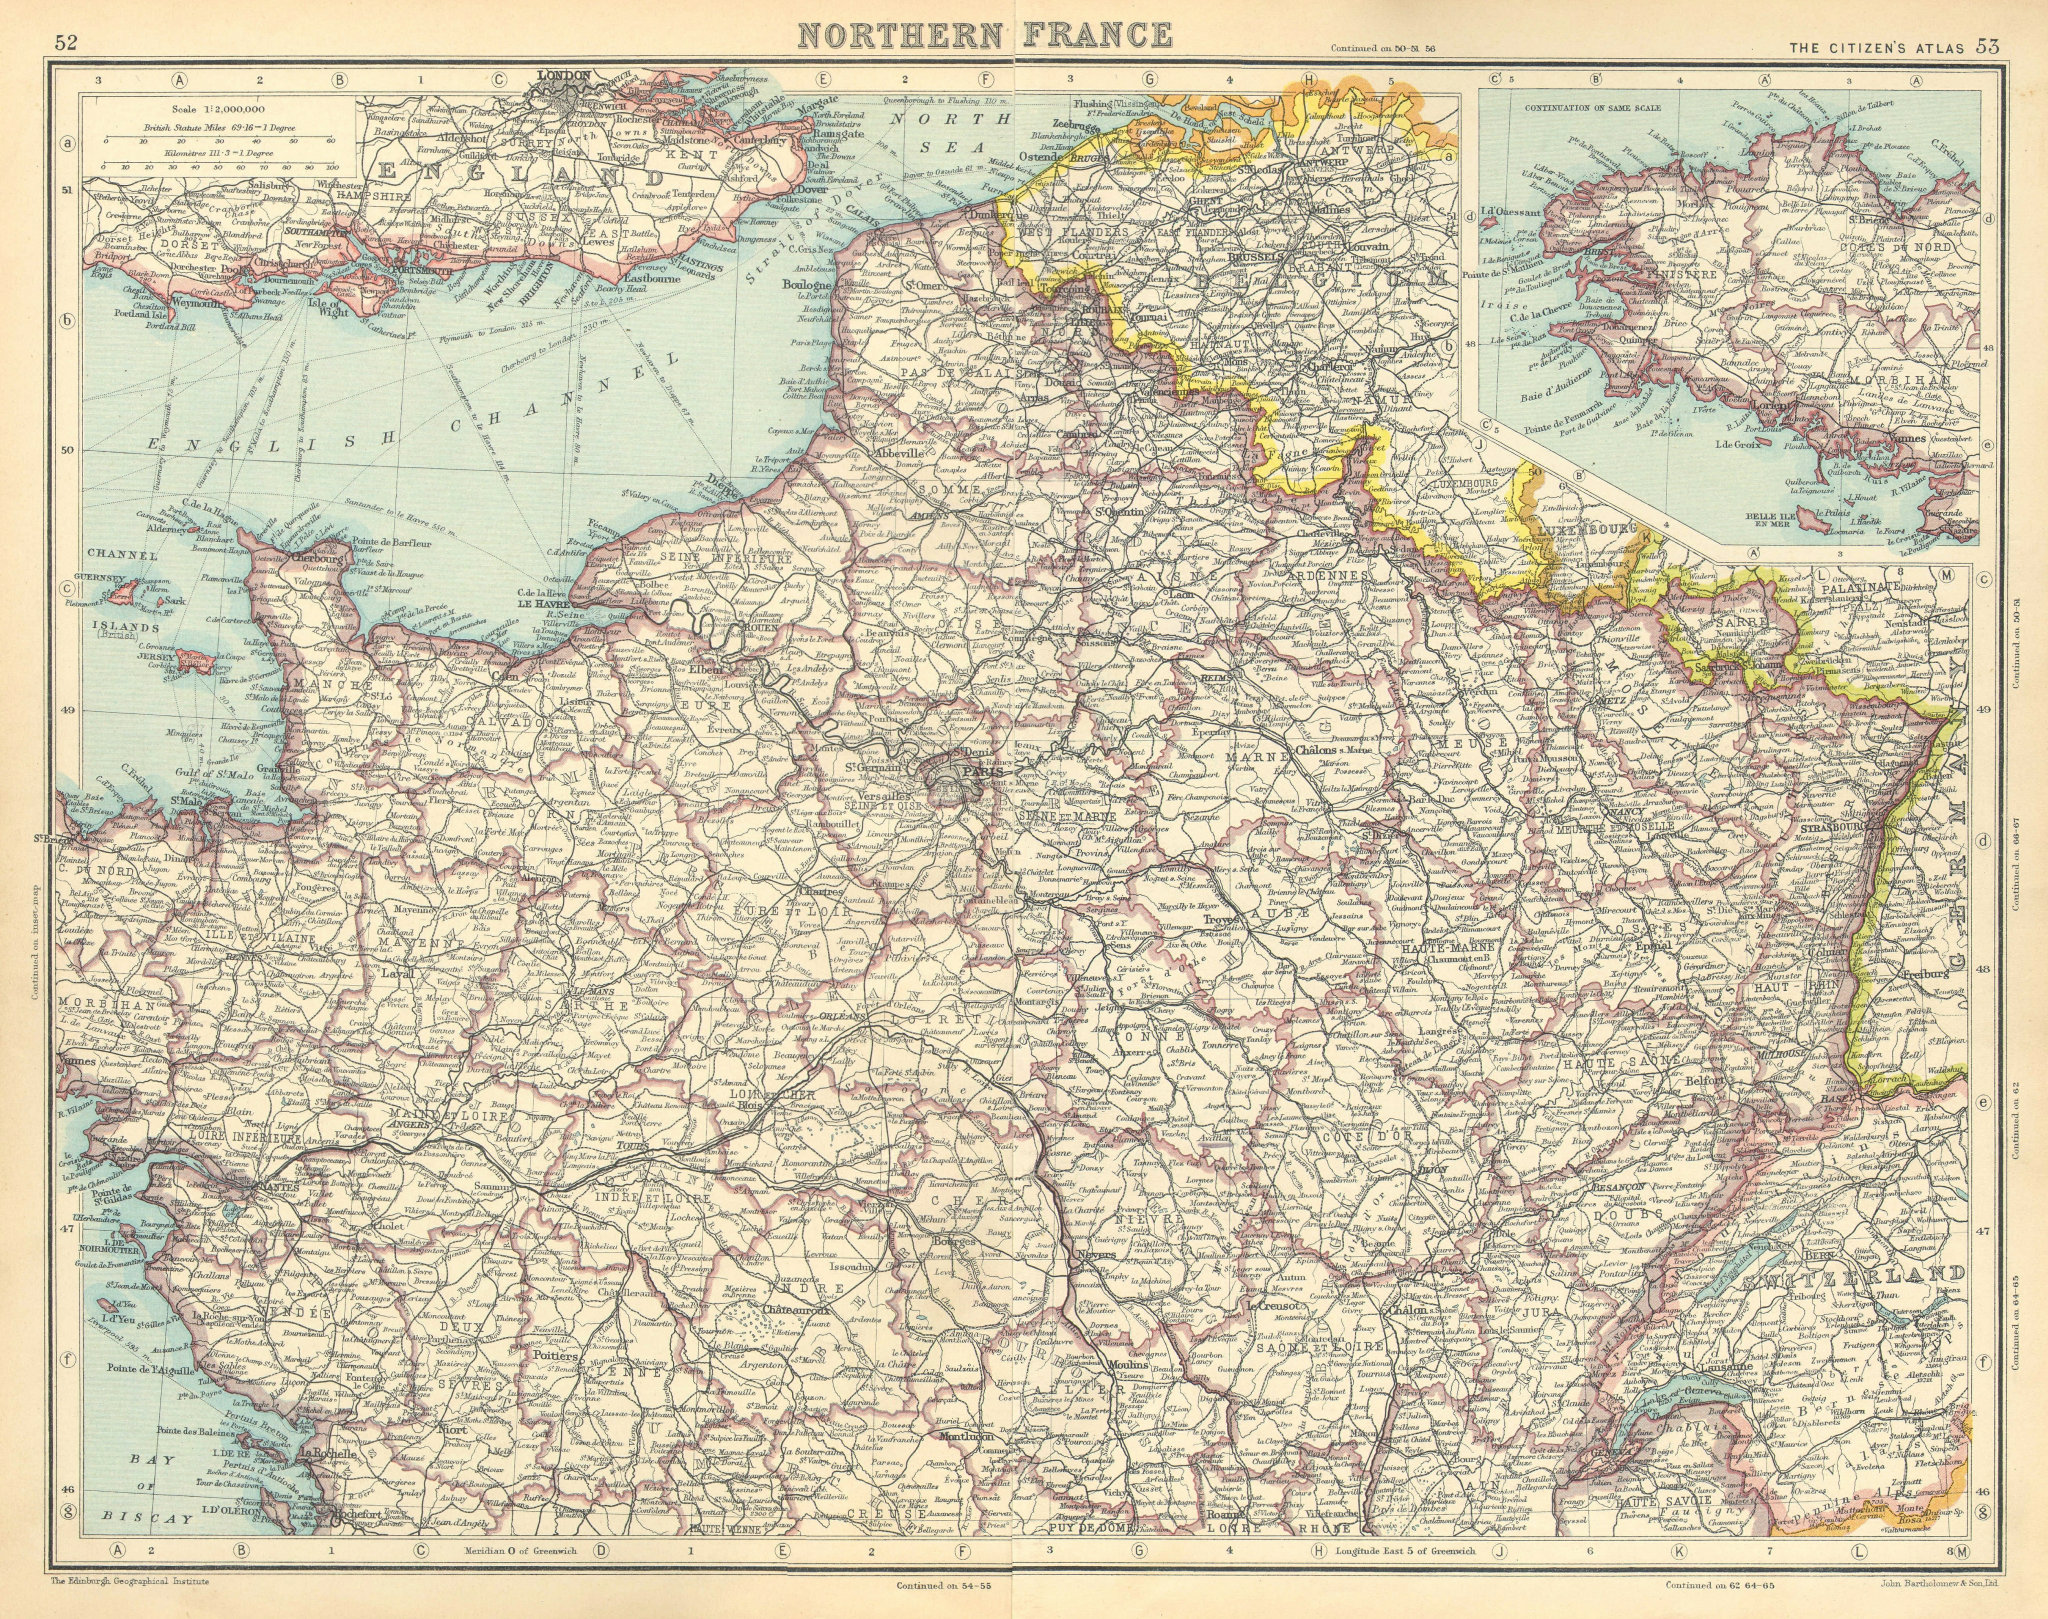 Associate Product NORTHERN FRANCE. Saar Basin Territory under League of Nations mandate 1924 map